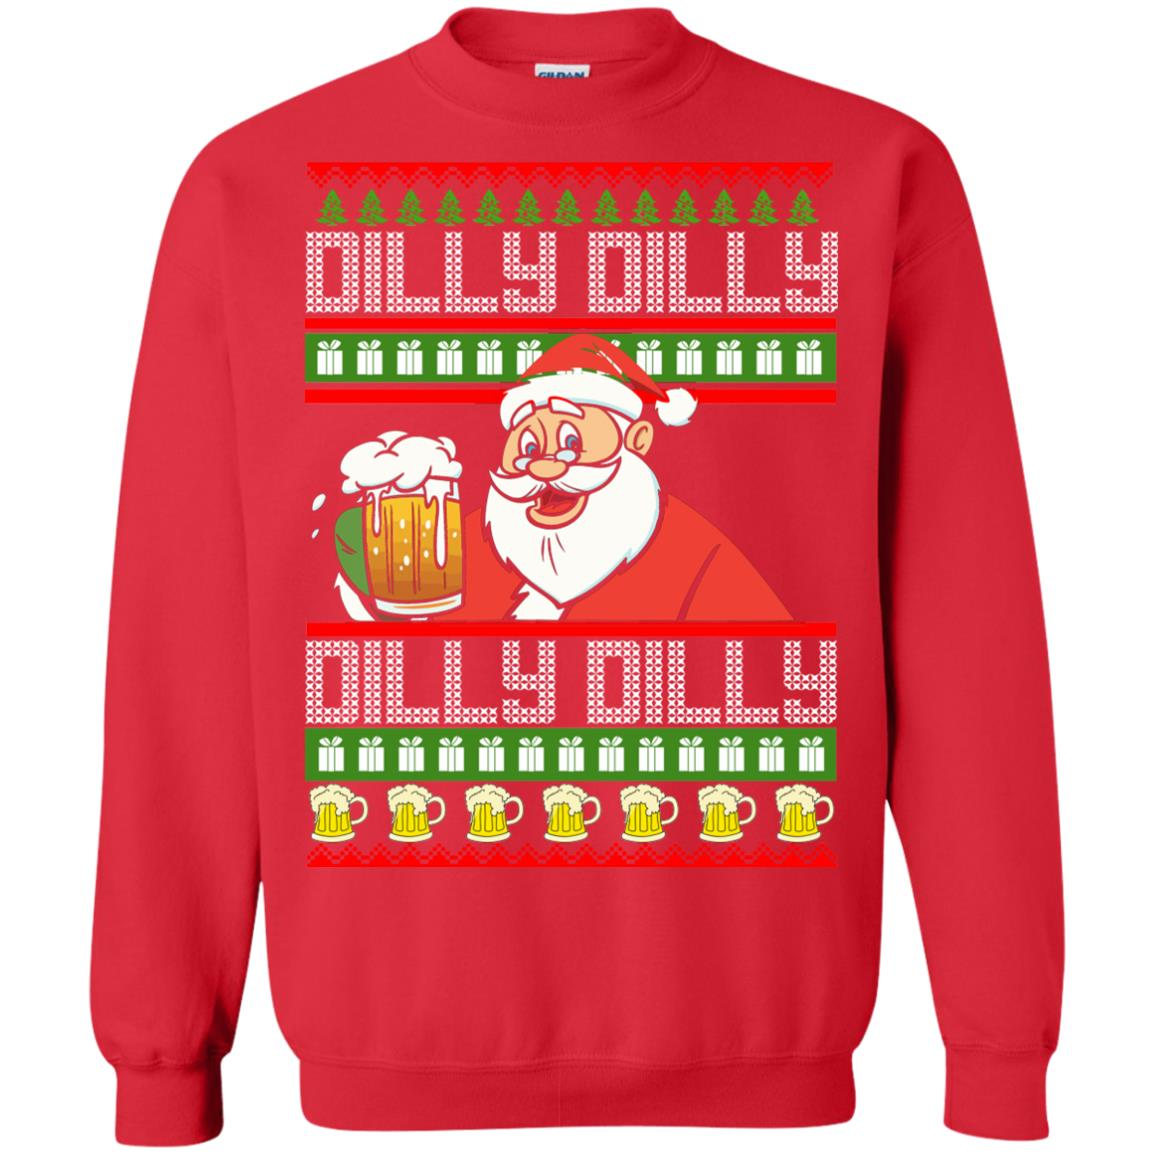 image 4190 - Dilly Dilly Christmas Sweater, Shirt, Hoodie